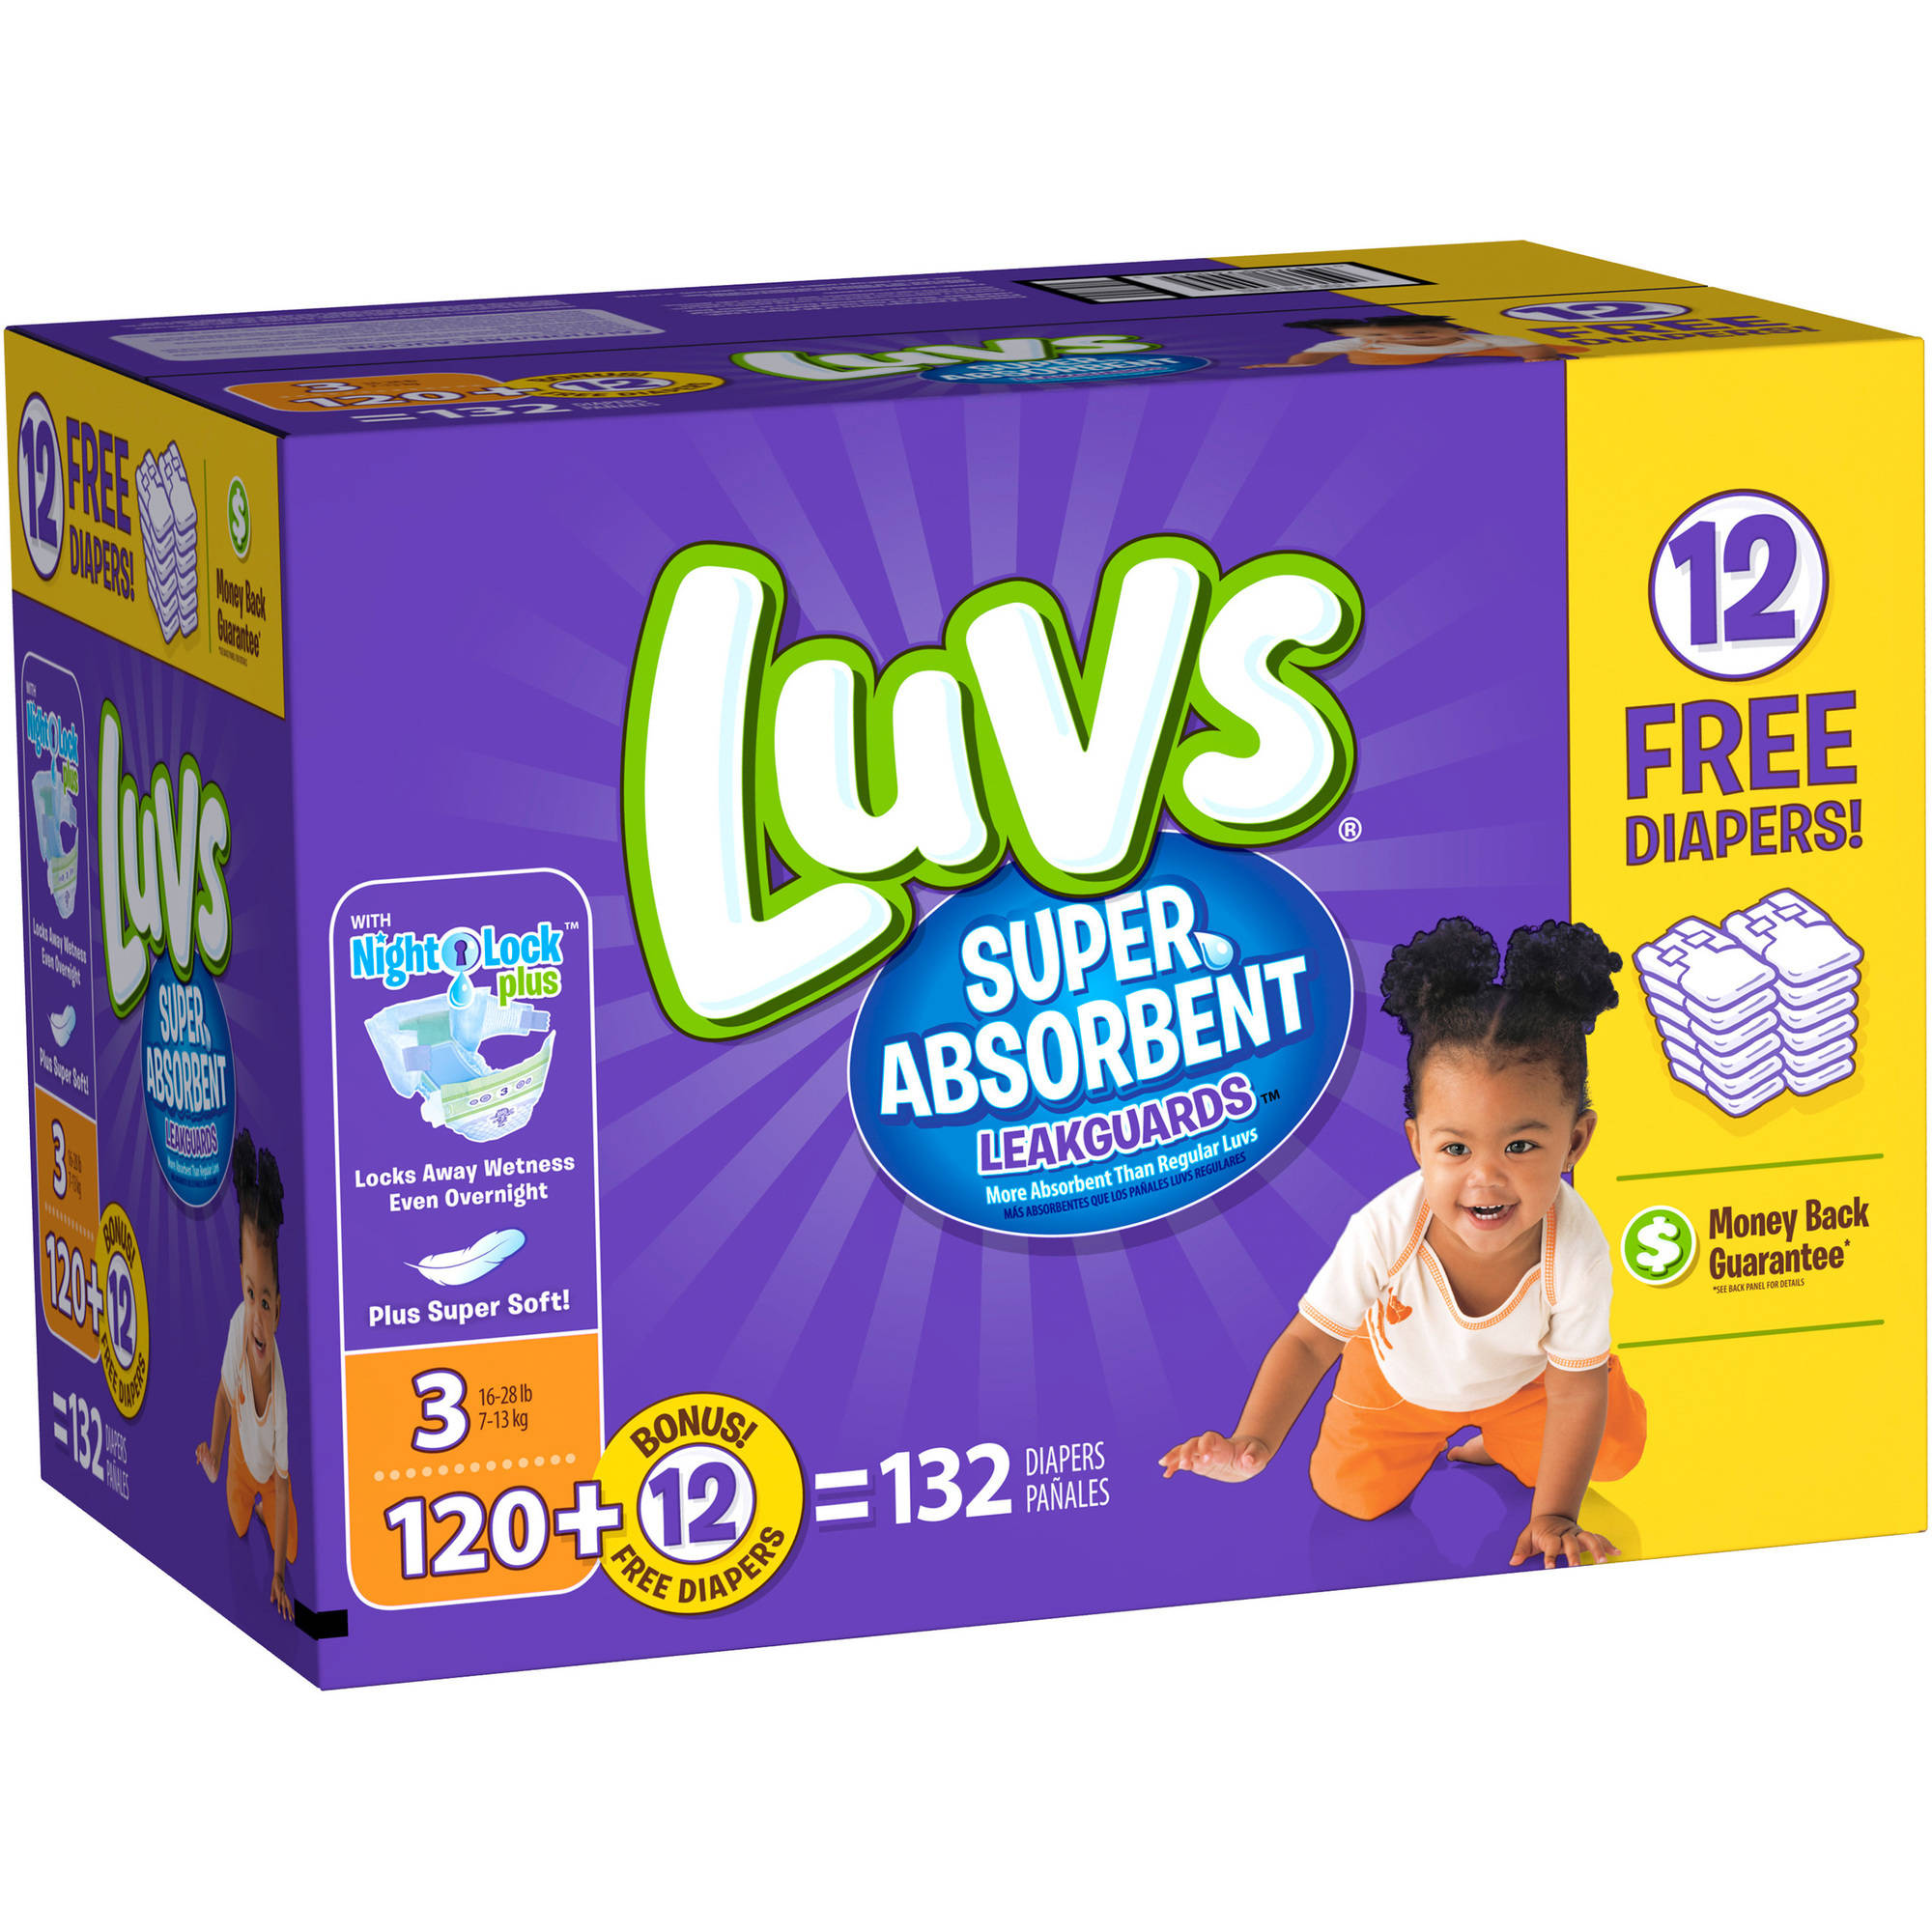 Luvs Super Absorbent Leakguards Diapers, Size 3, 132 count ...